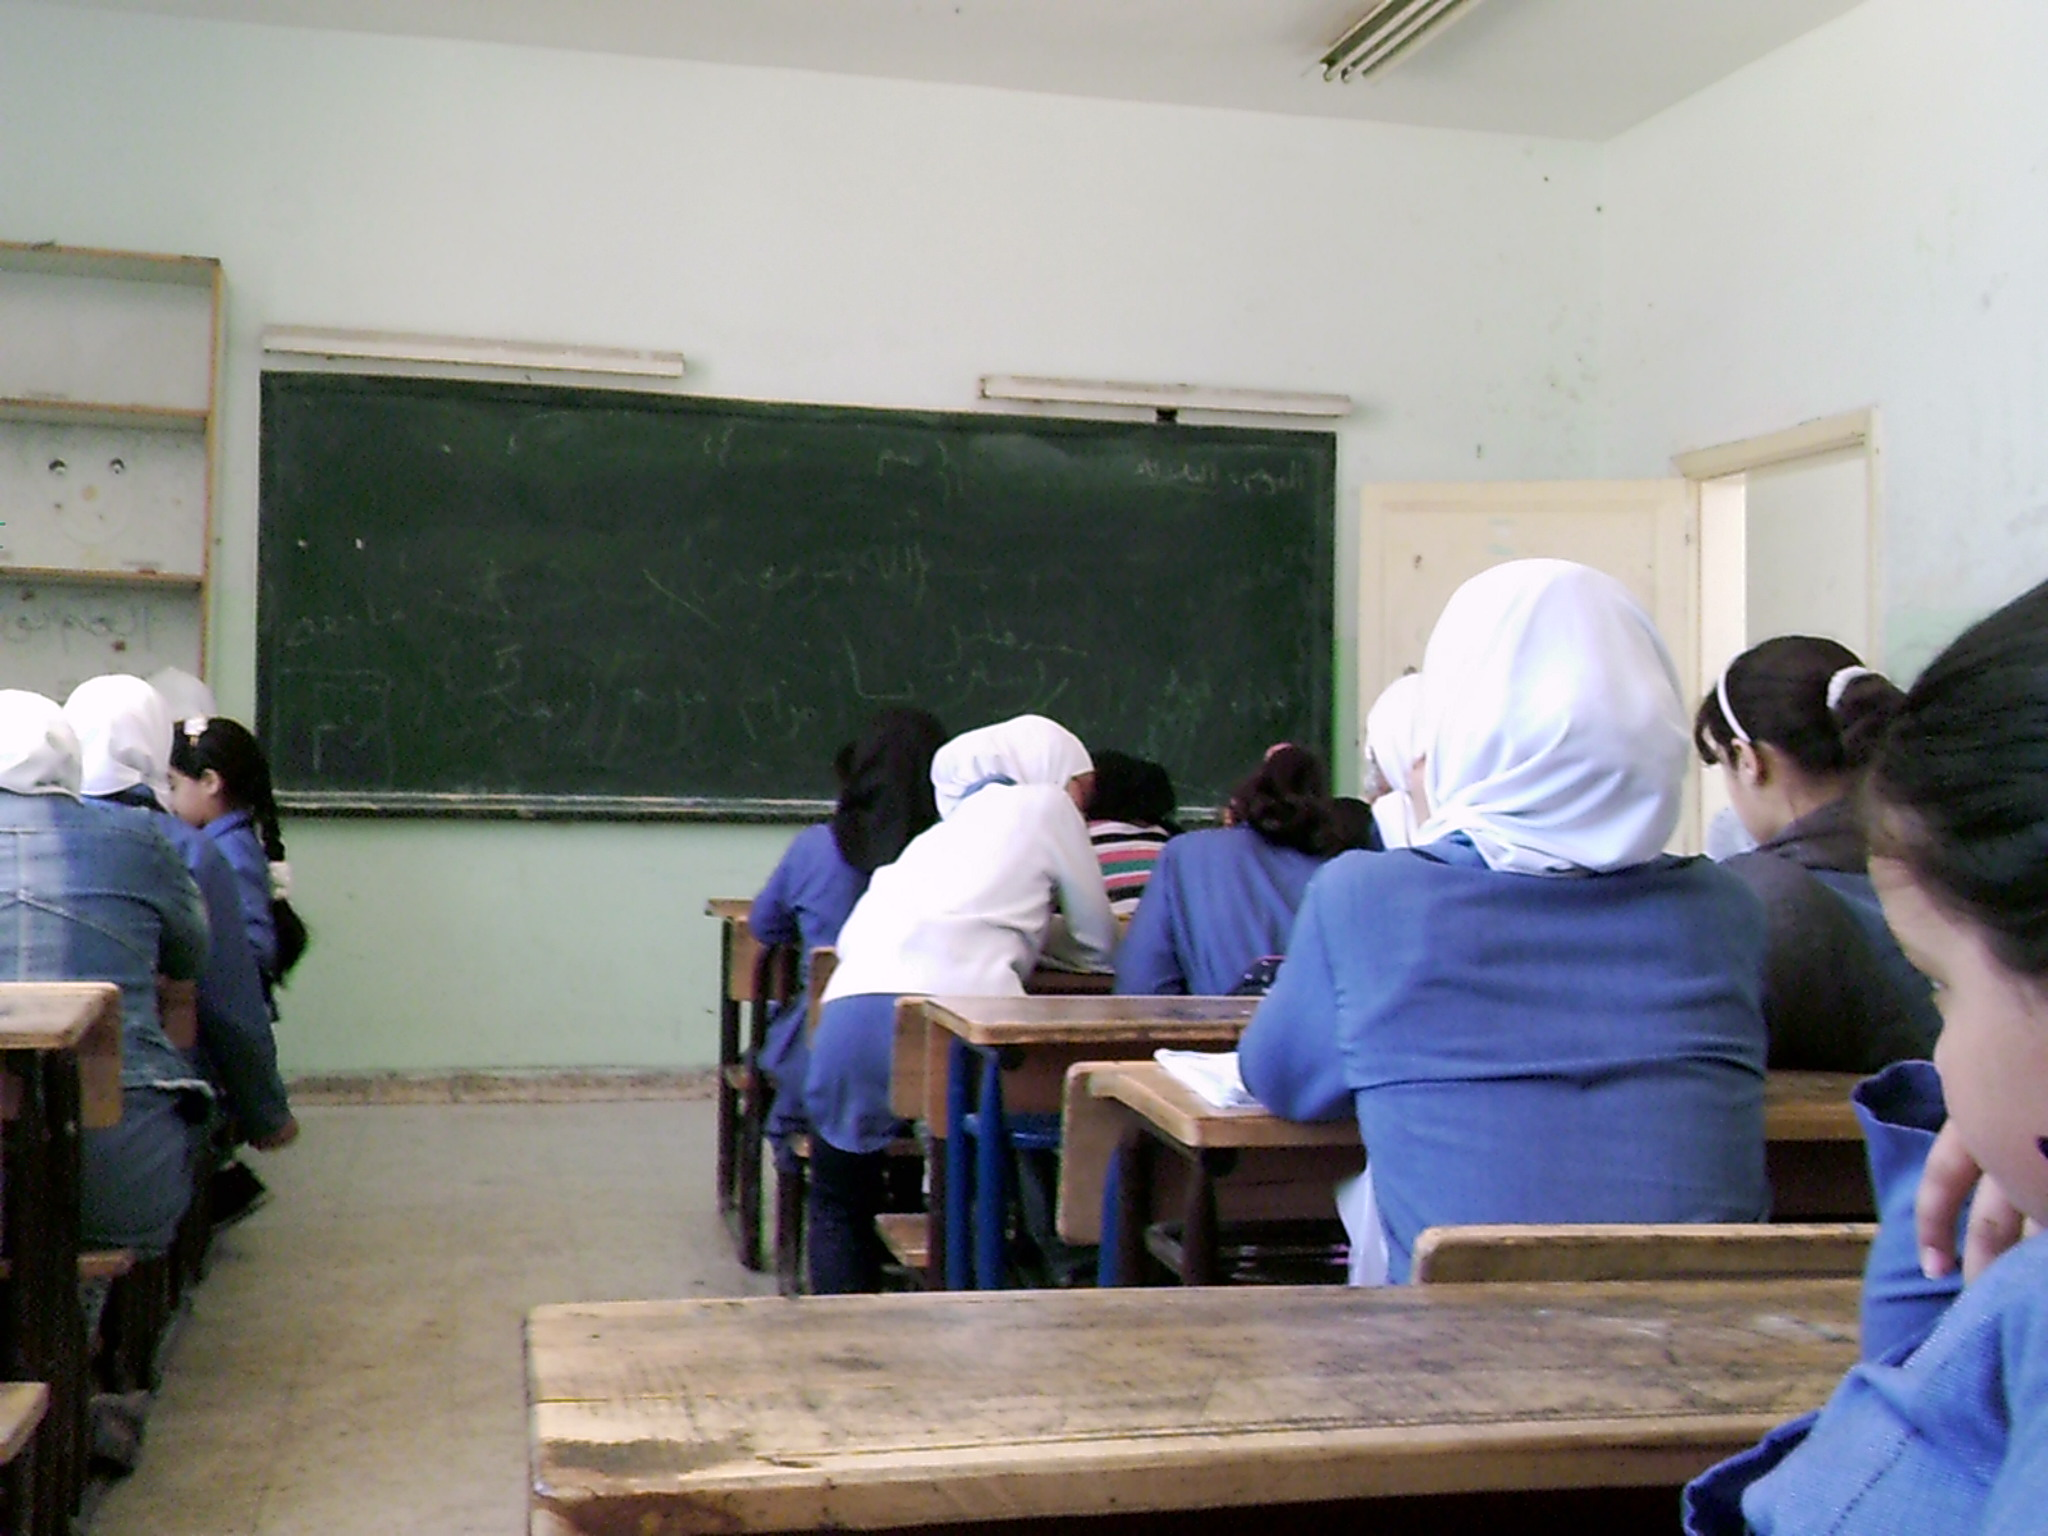 Ten students, Jordanians and Syrians, from sixth and seventh grade took pictures to document their daily school life. This photo was shot by the sixth grader Ateer. She likes her classroom and feels safe.